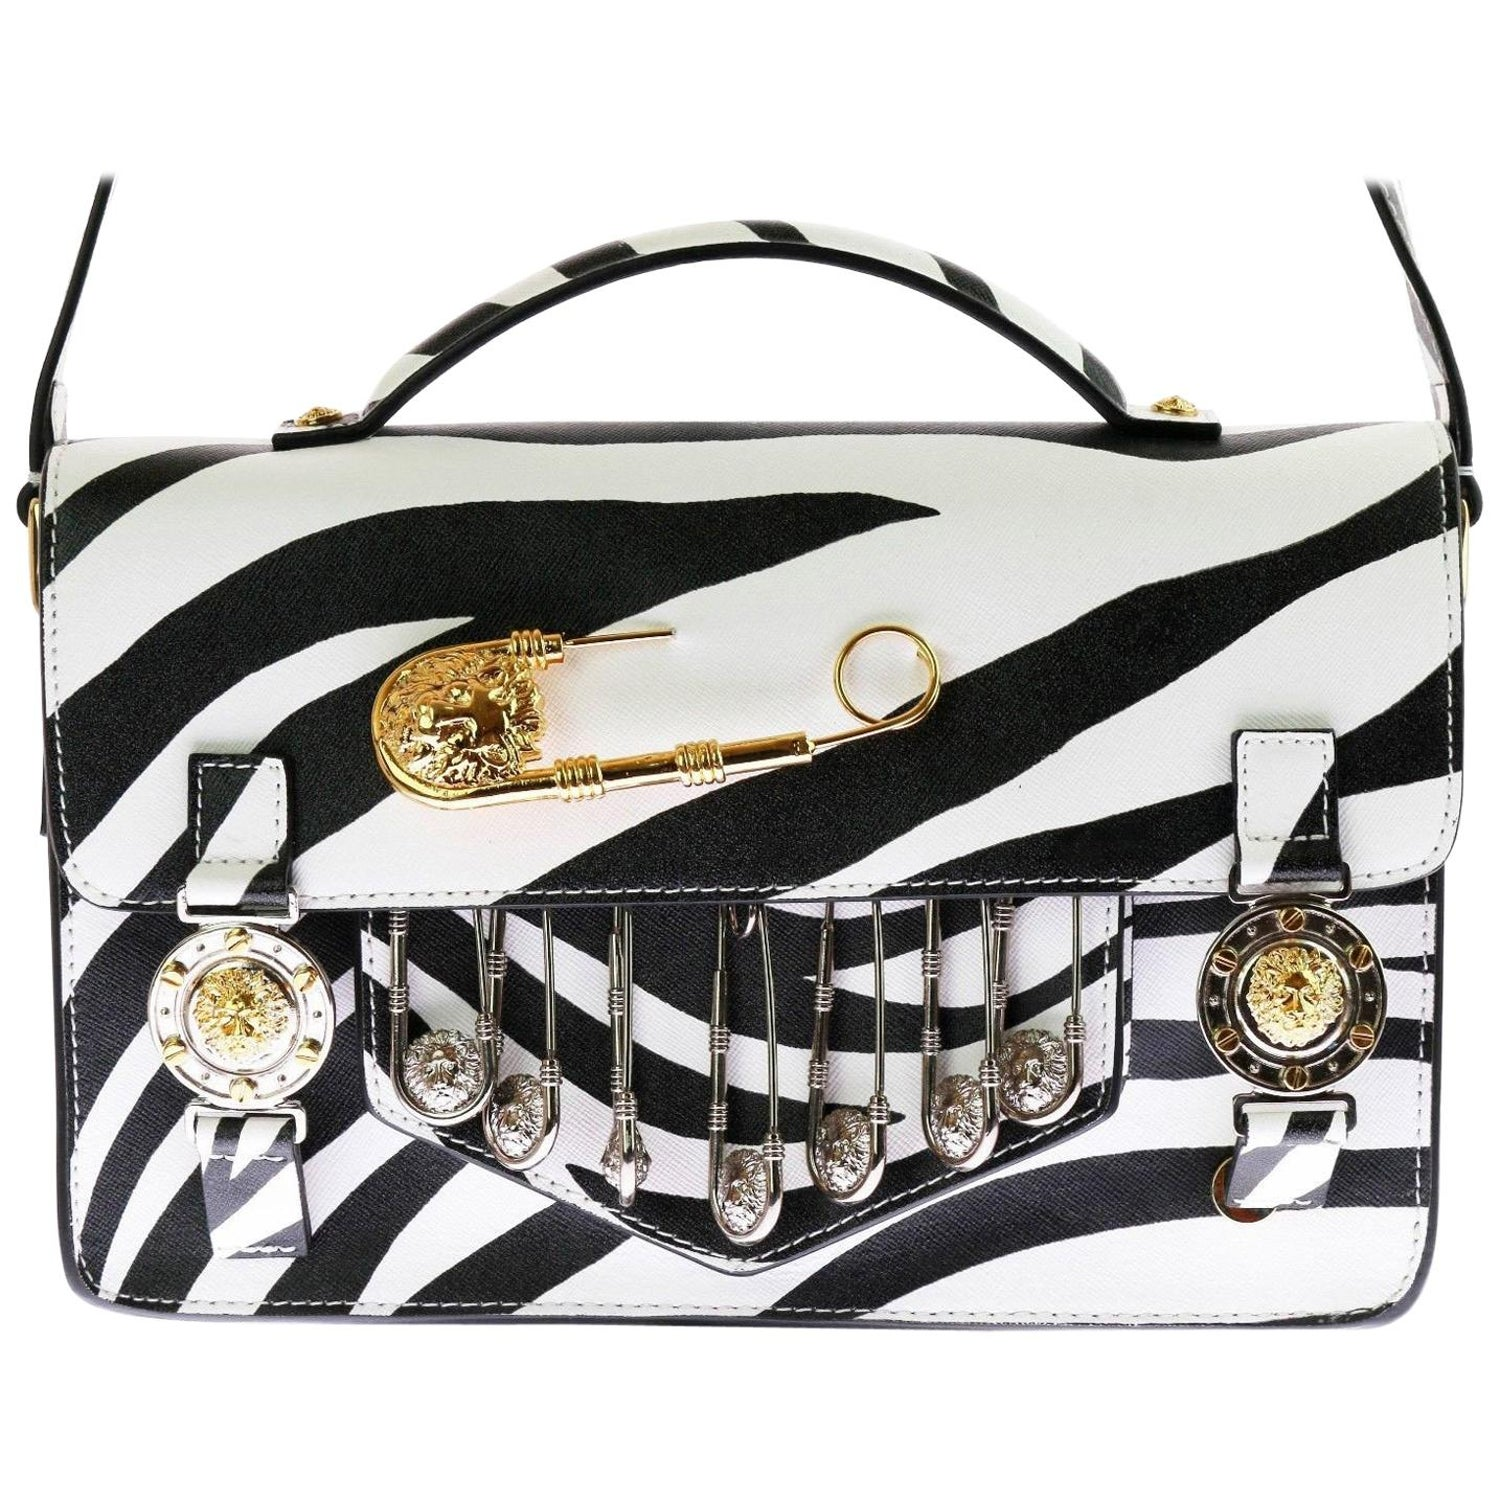 c213b9eb1d VERSUS VERSACE Safety Pin Embellished Zebra print Saffiano Leather School  Bag For Sale at 1stdibs